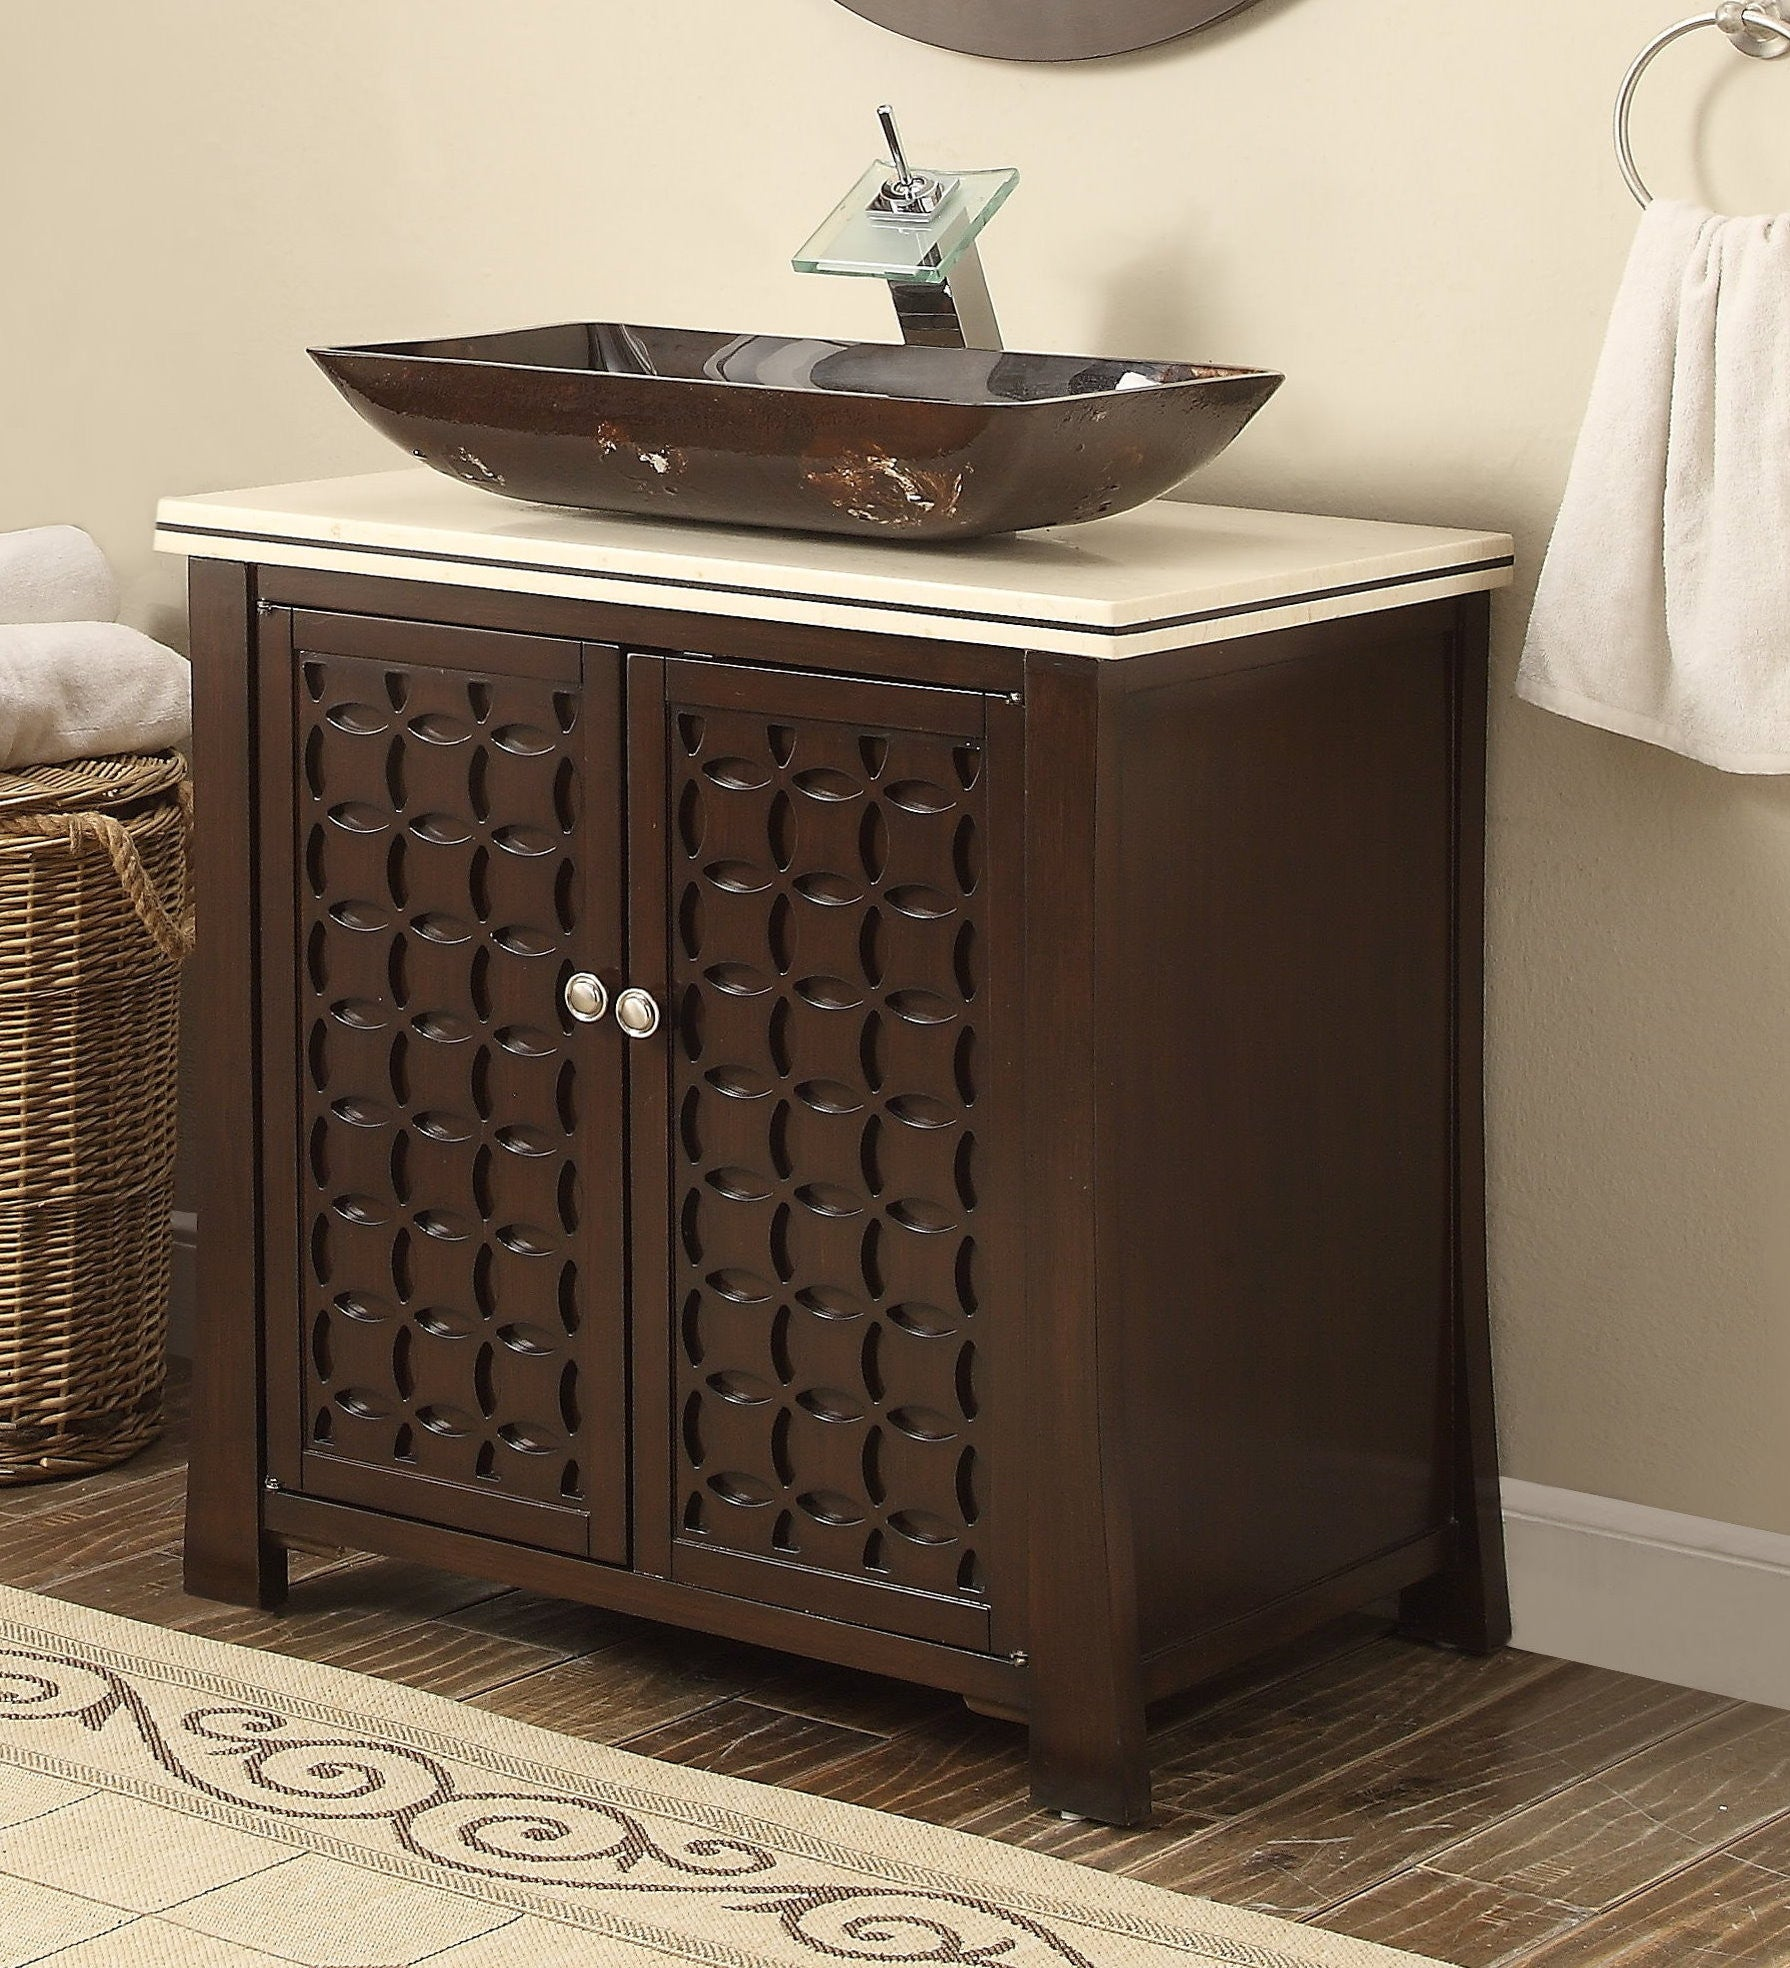 30 benton collection modern style vessel sink giovanni bathroom sink the benton collection for New style bathroom vanity